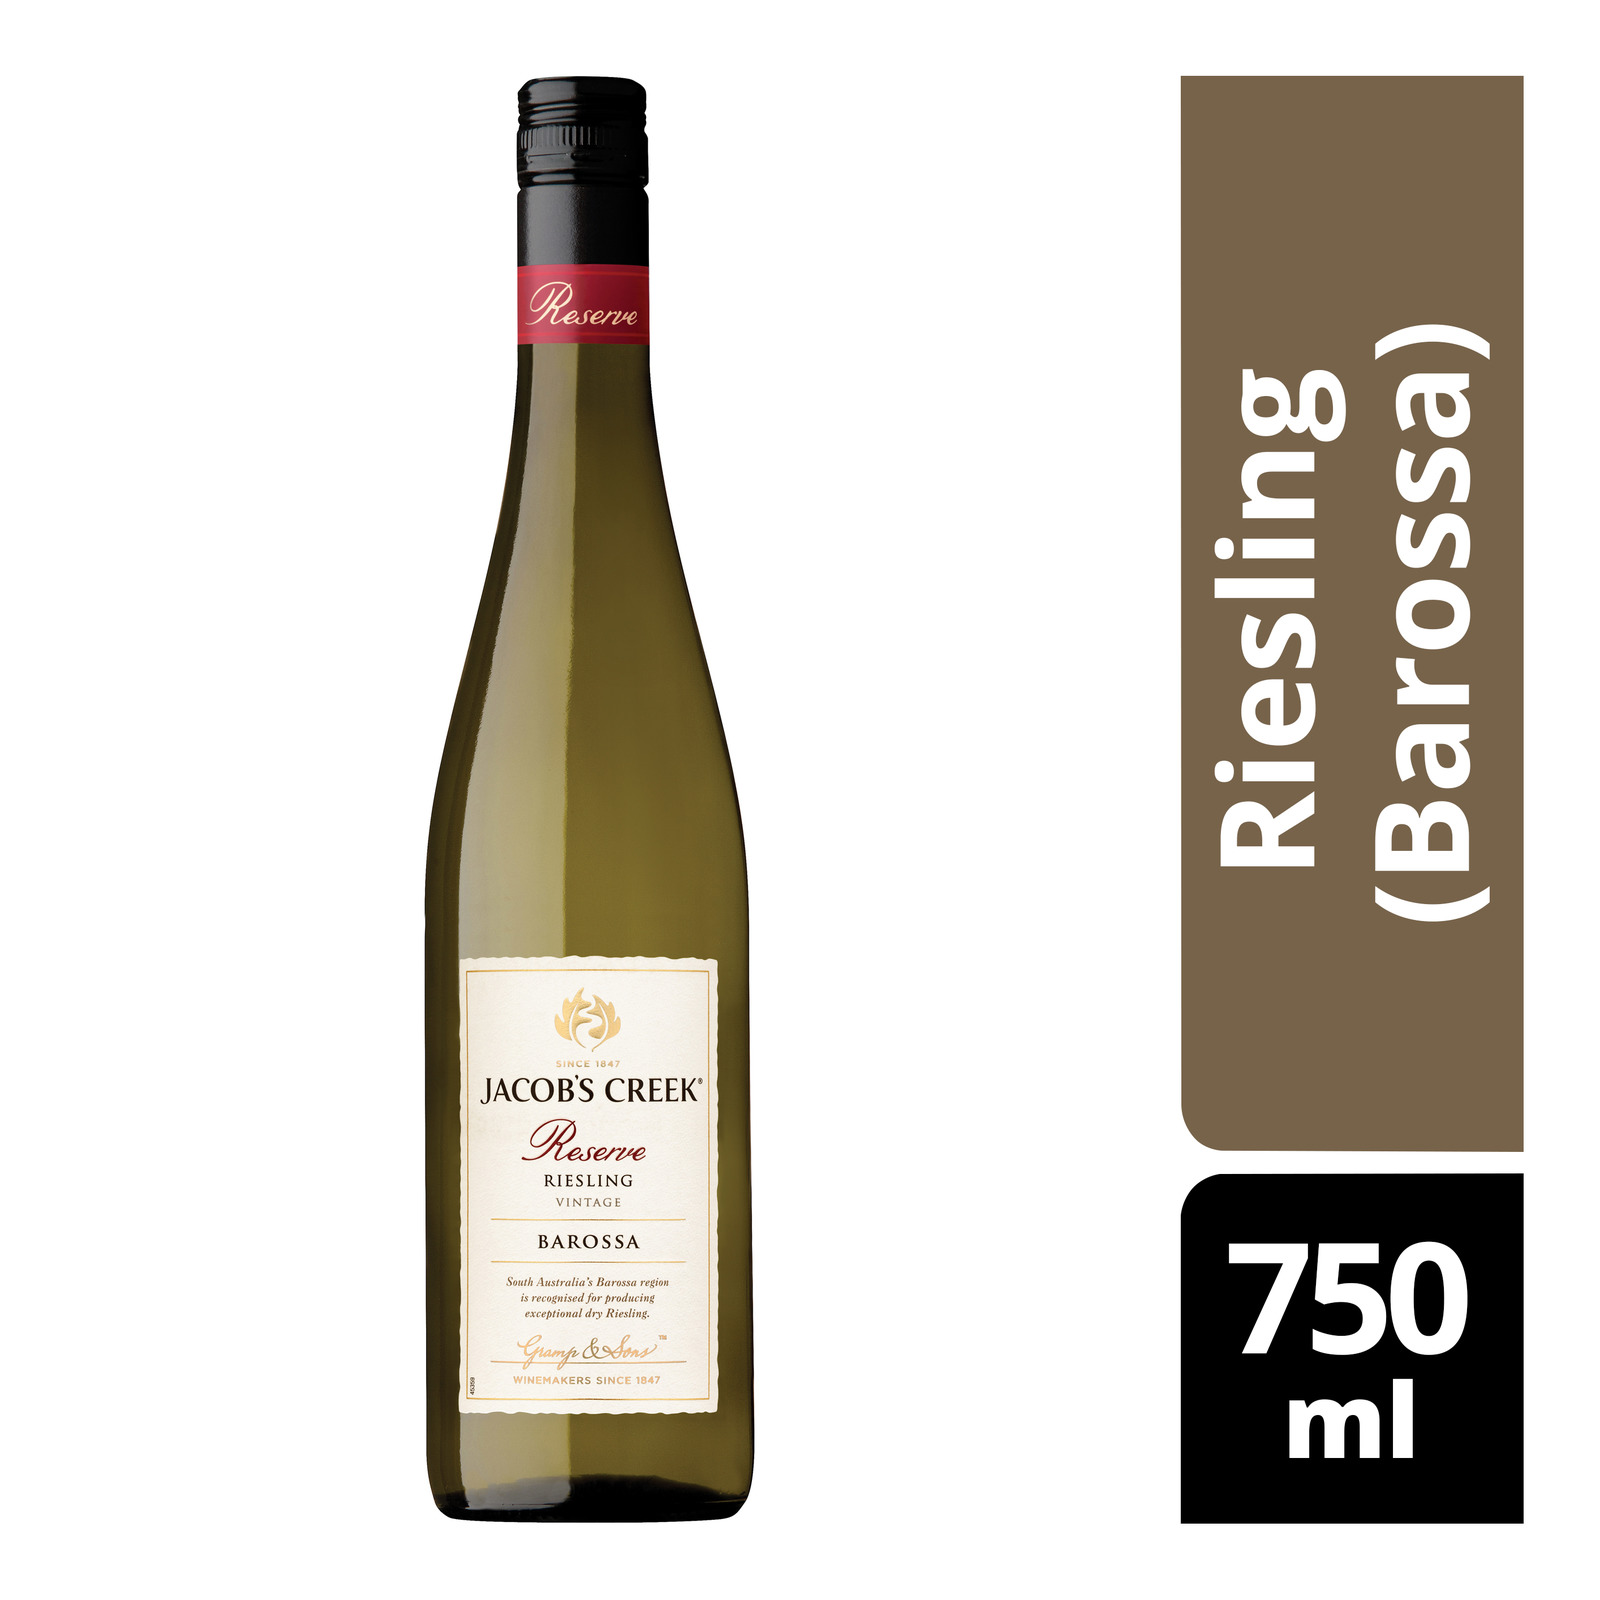 Jacob's Creek Reserve White Wine - Riesling (Barossa)